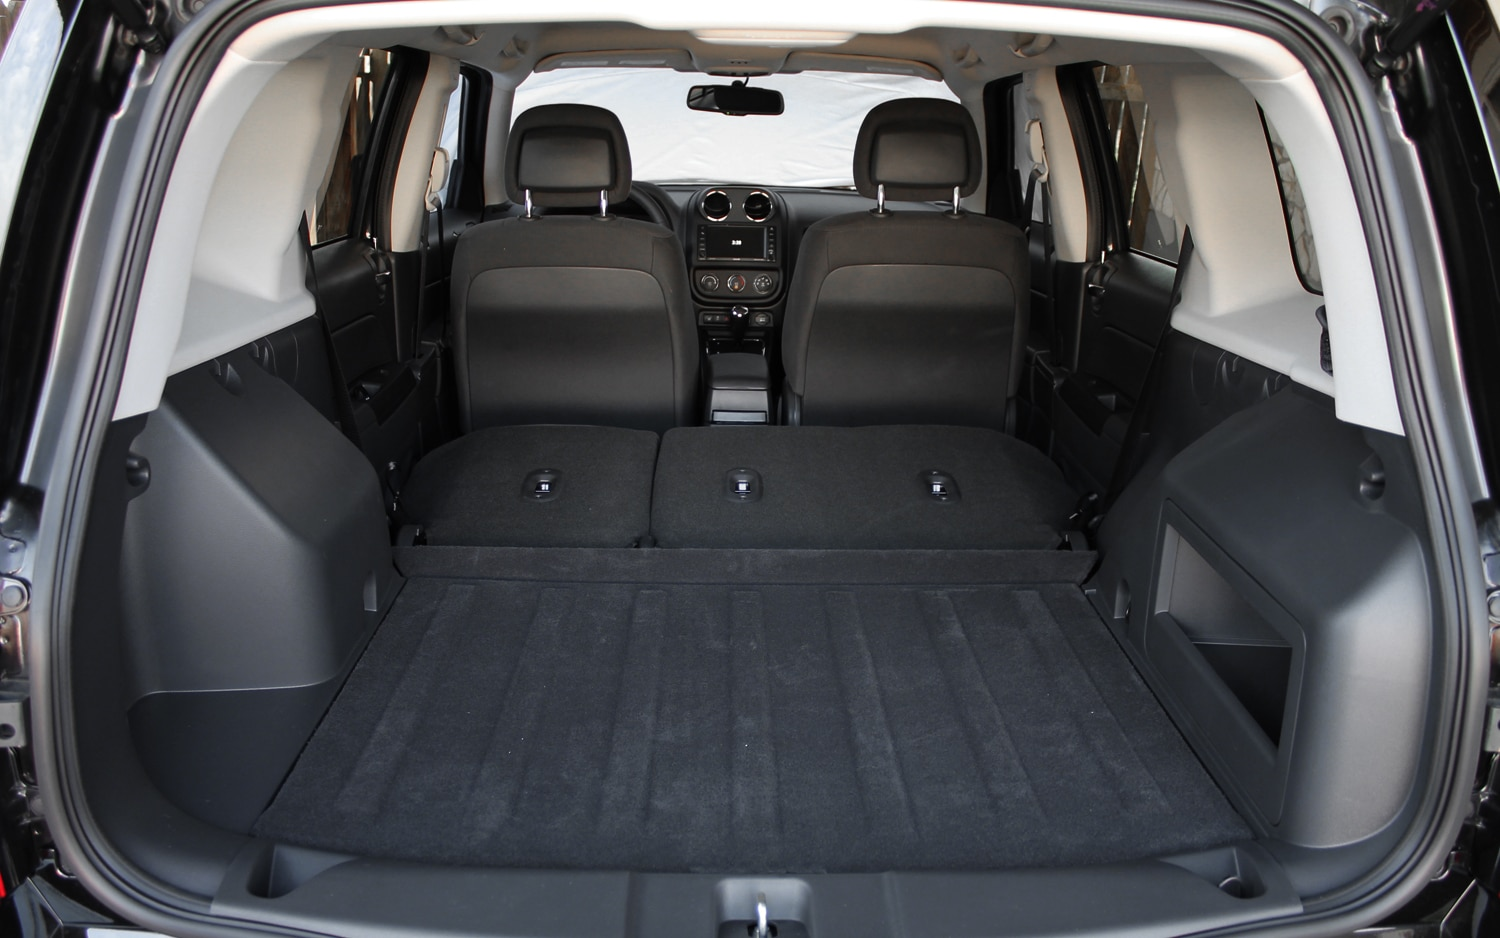 2013 Jeep Patriot Latitude 4X4 Rear Interior Cargo Space 03